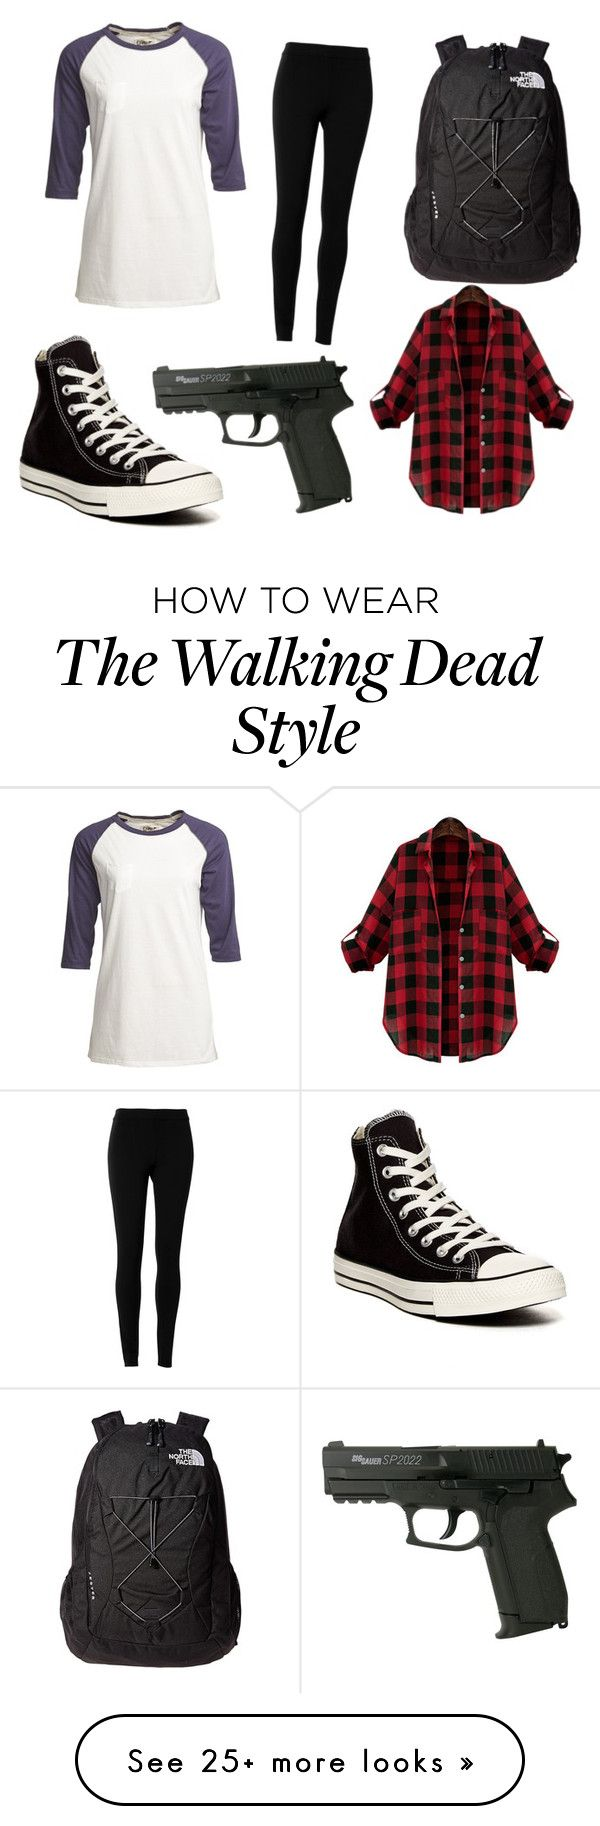 Walking dead converse shoes for sale -  The Walking Dead By Kmayhew4415 On Polyvore Featuring Camp Collection Max Studio